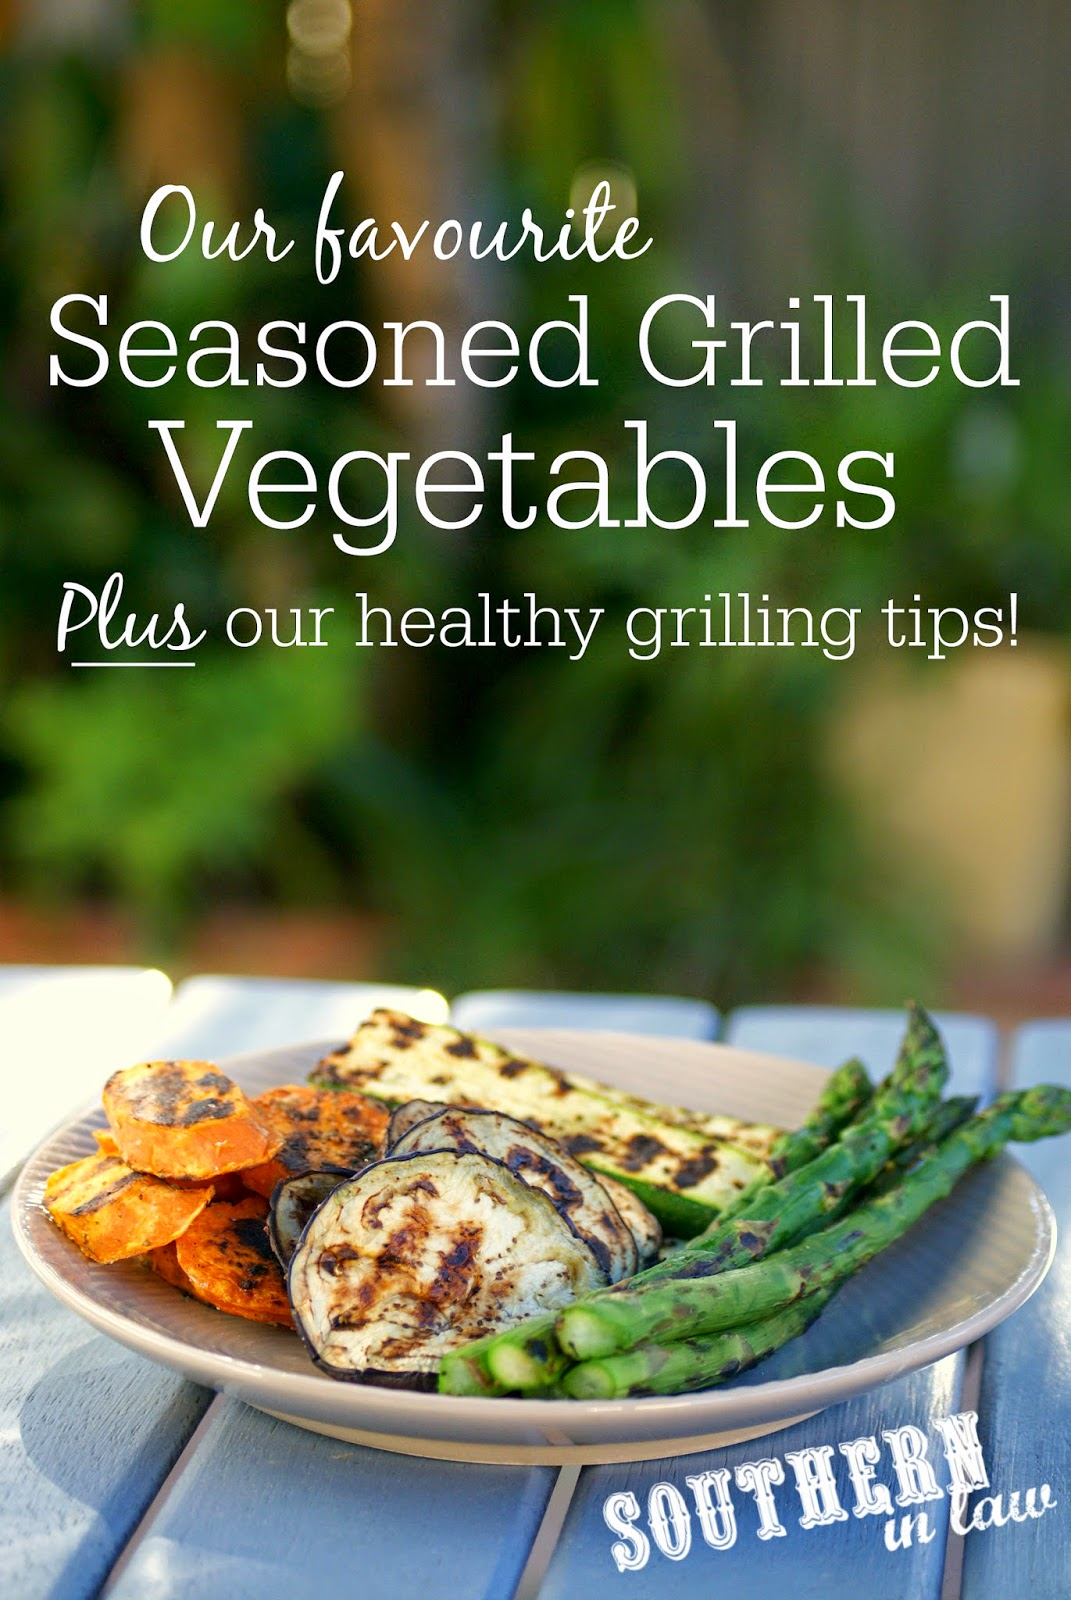 Our Favourite Tree Guide Trees Of The Carolinian Forest: Southern In Law: Recipe: Our Favourite Seasoned Grilled